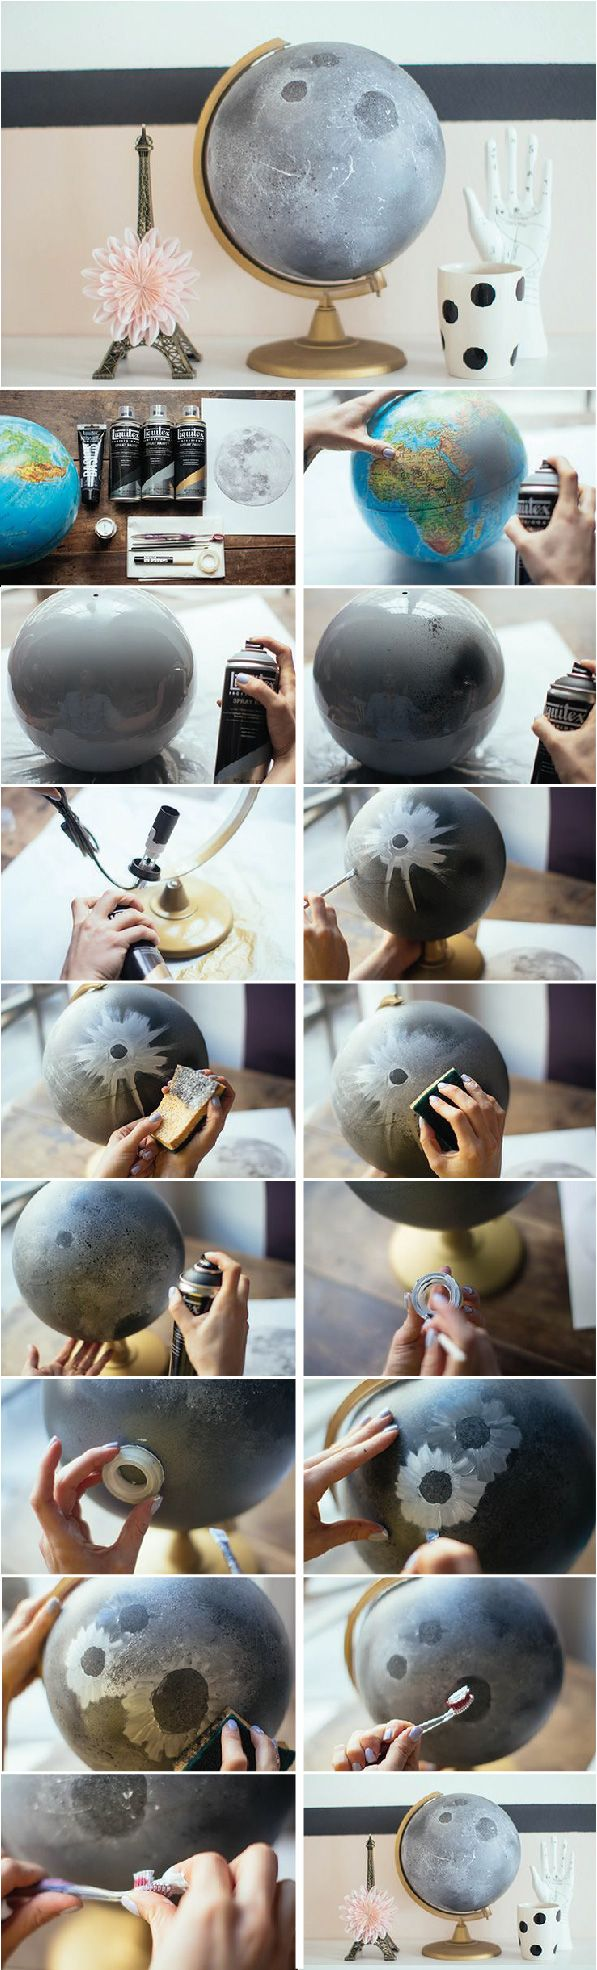 http://makemylemonade.com/diy-to-the-moon-and-back/